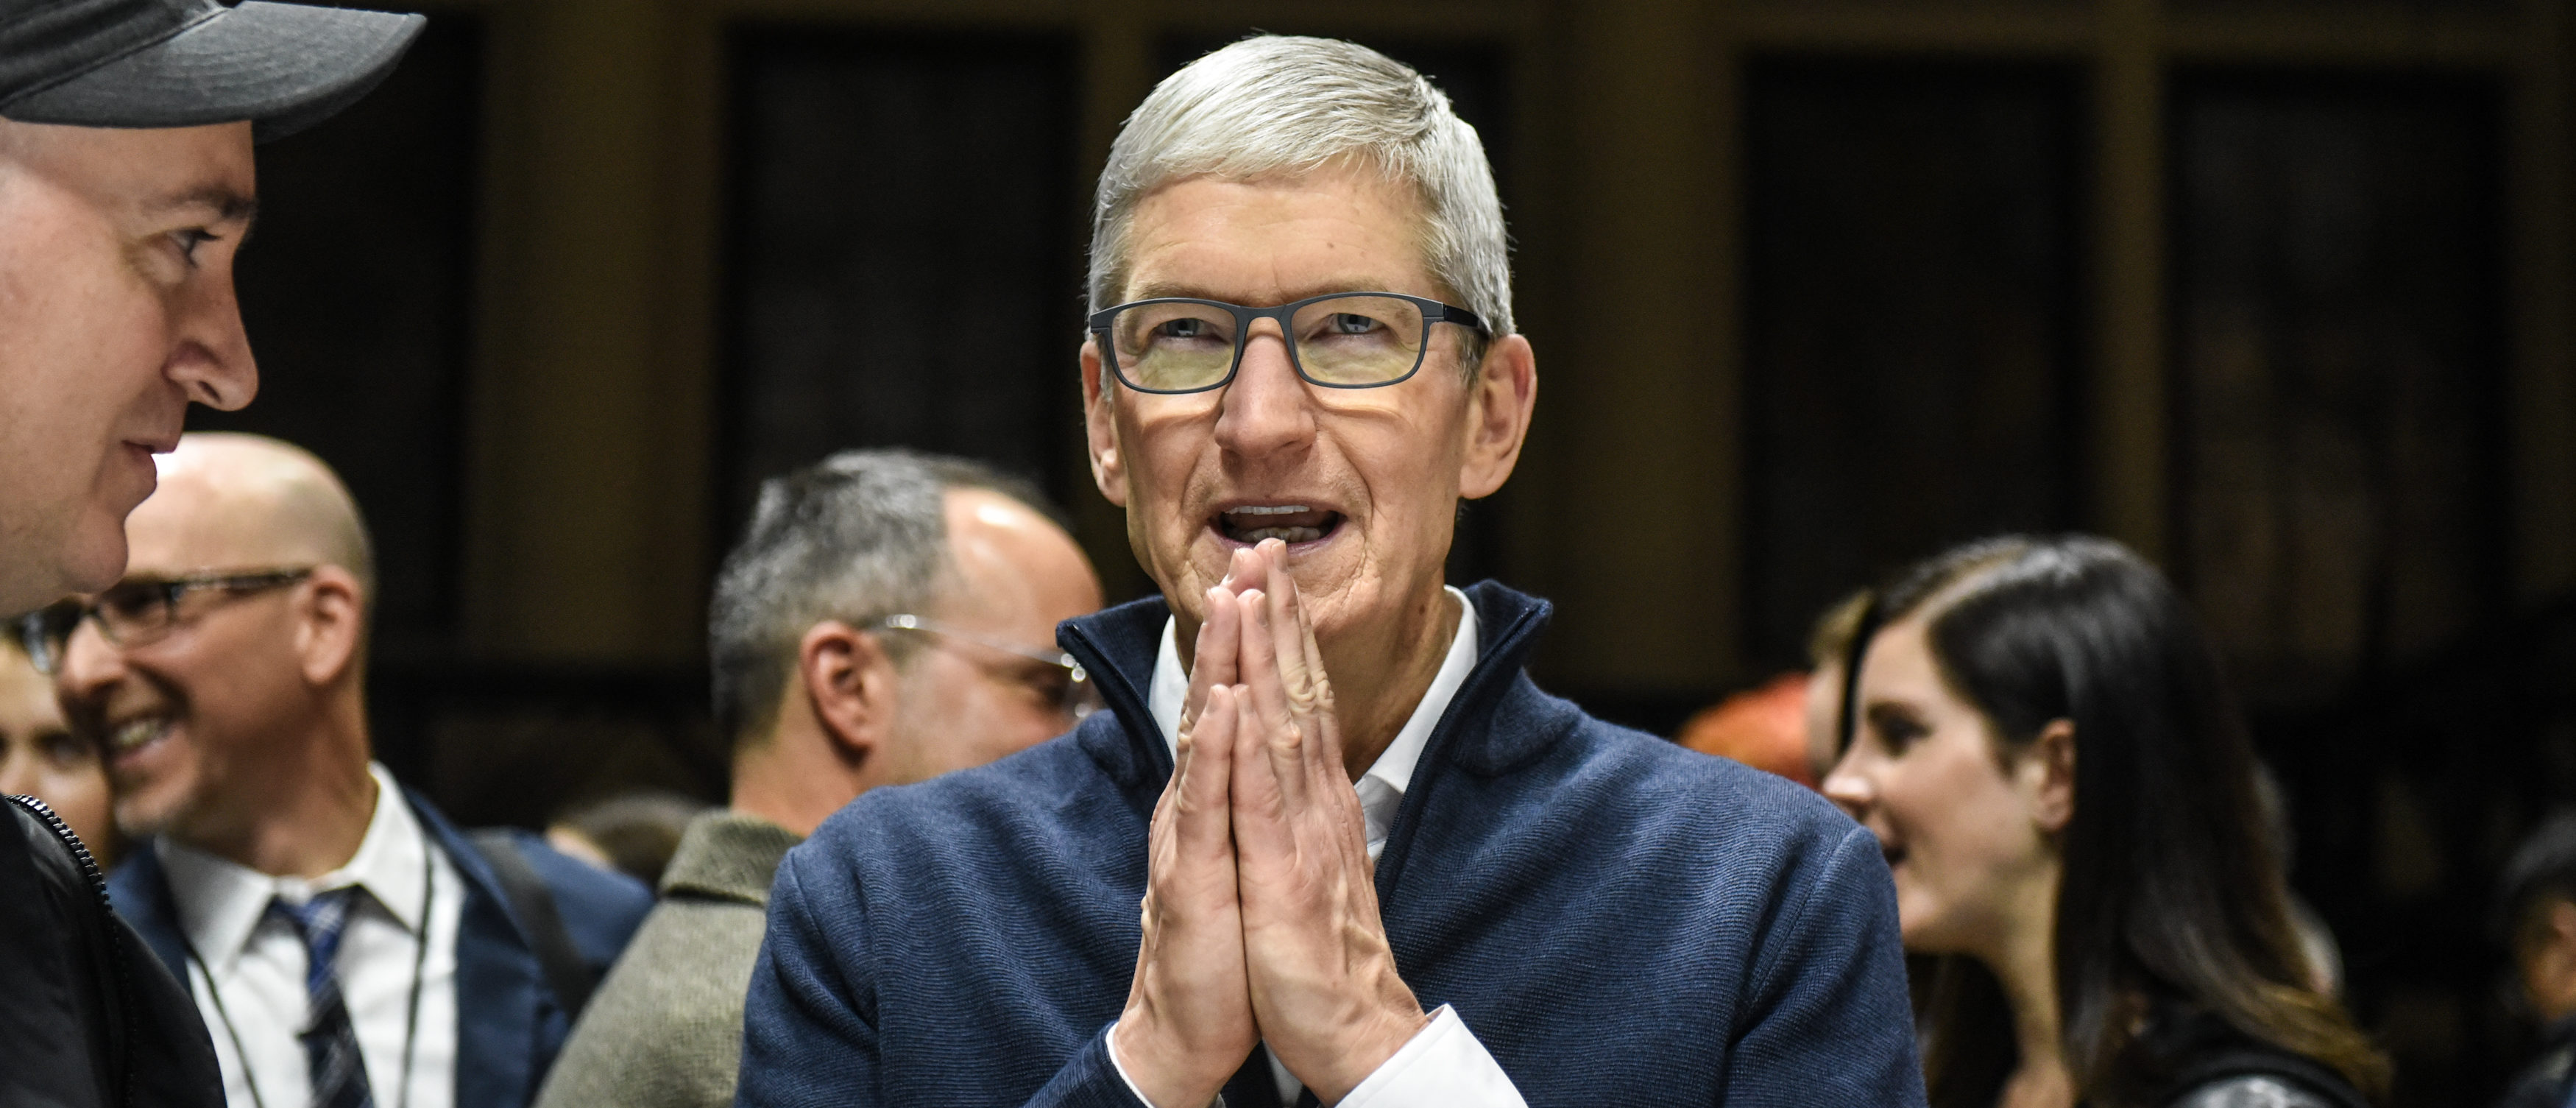 NEW YORK, NY - OCTOBER 30: Tim Cook, CEO of Apple speaks while unveiling new products during a launch event at the Brooklyn Academy of Music on October 30, 2018 in New York City. (Stephanie Keith/Getty Images)